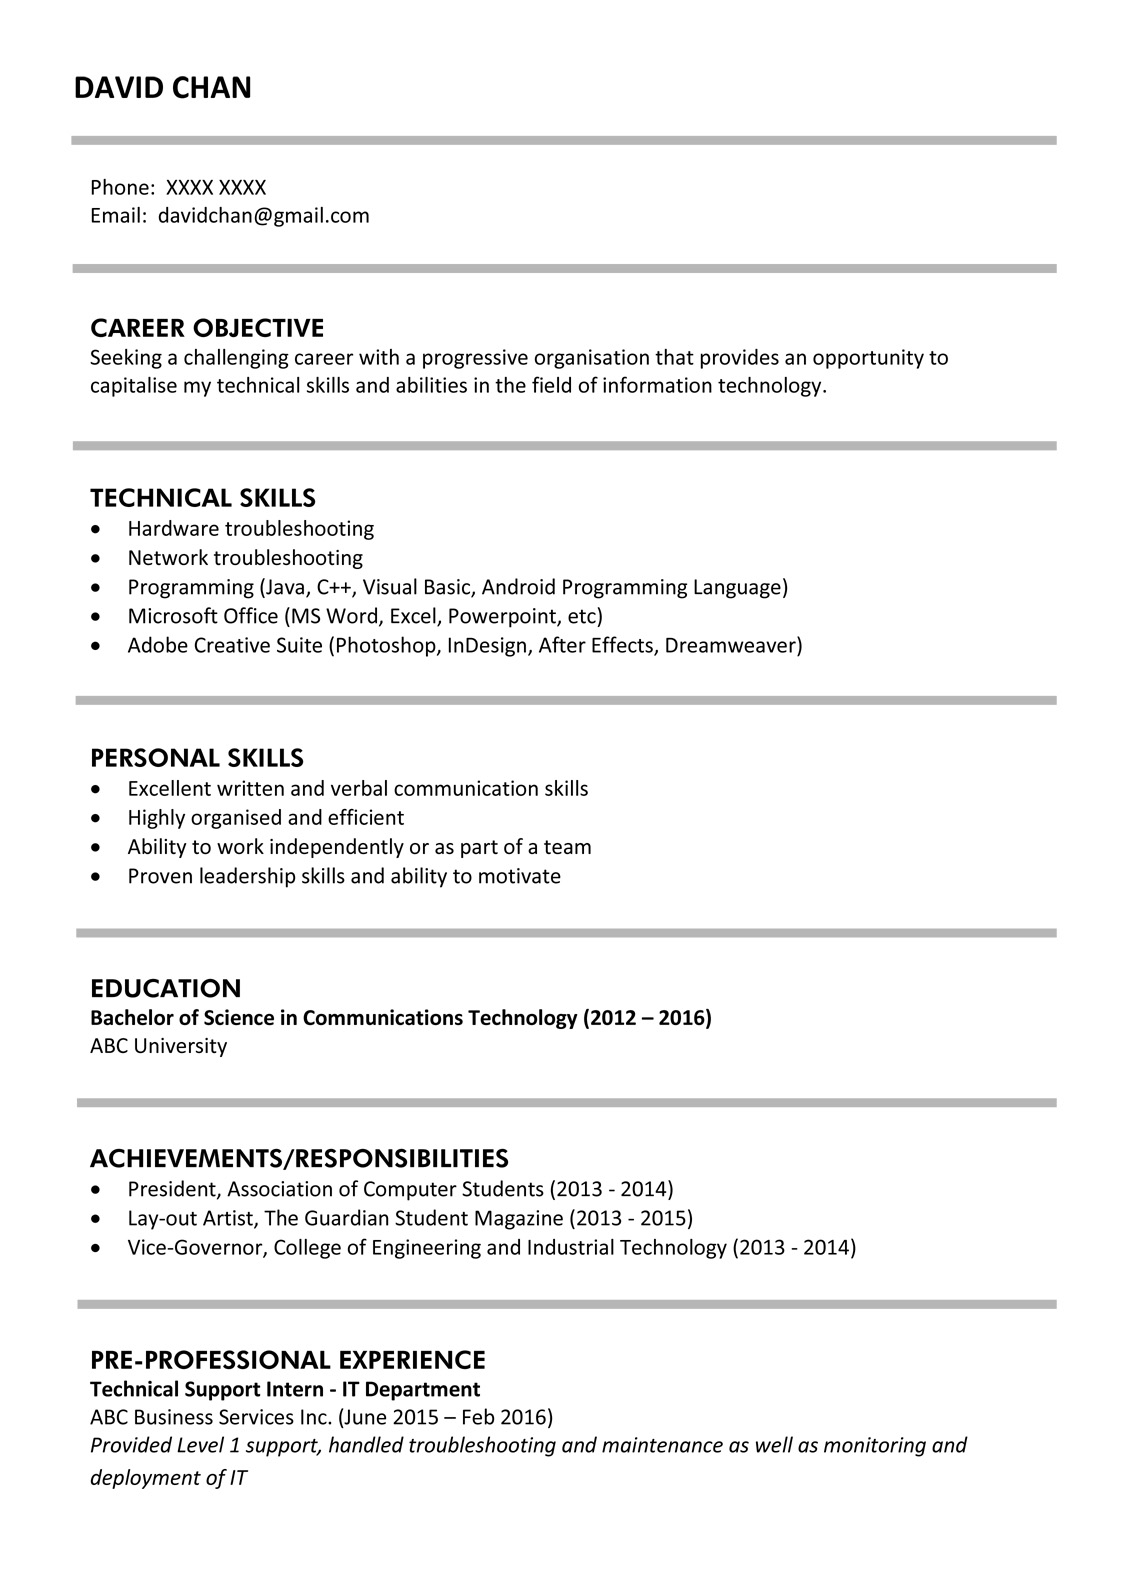 Resume objectives for it professionals